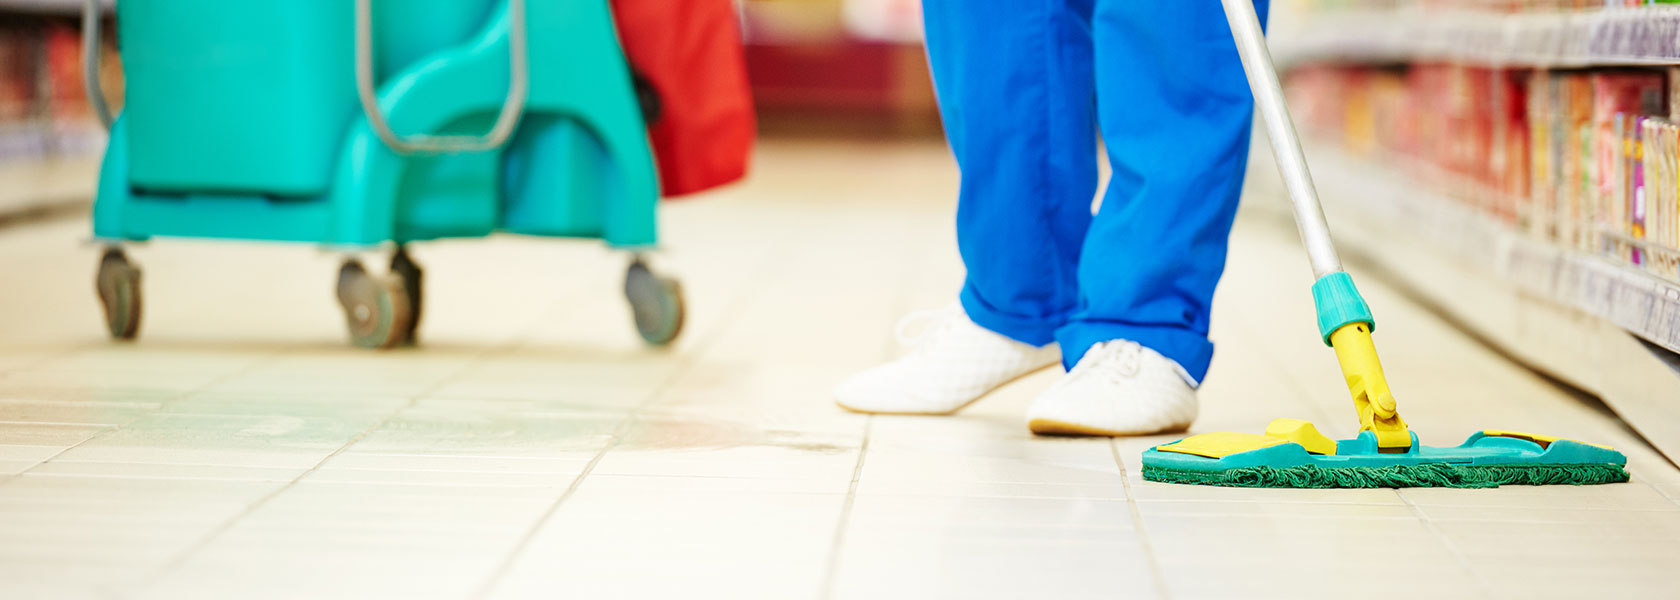 Retail Store Cleaning Services in Dubai